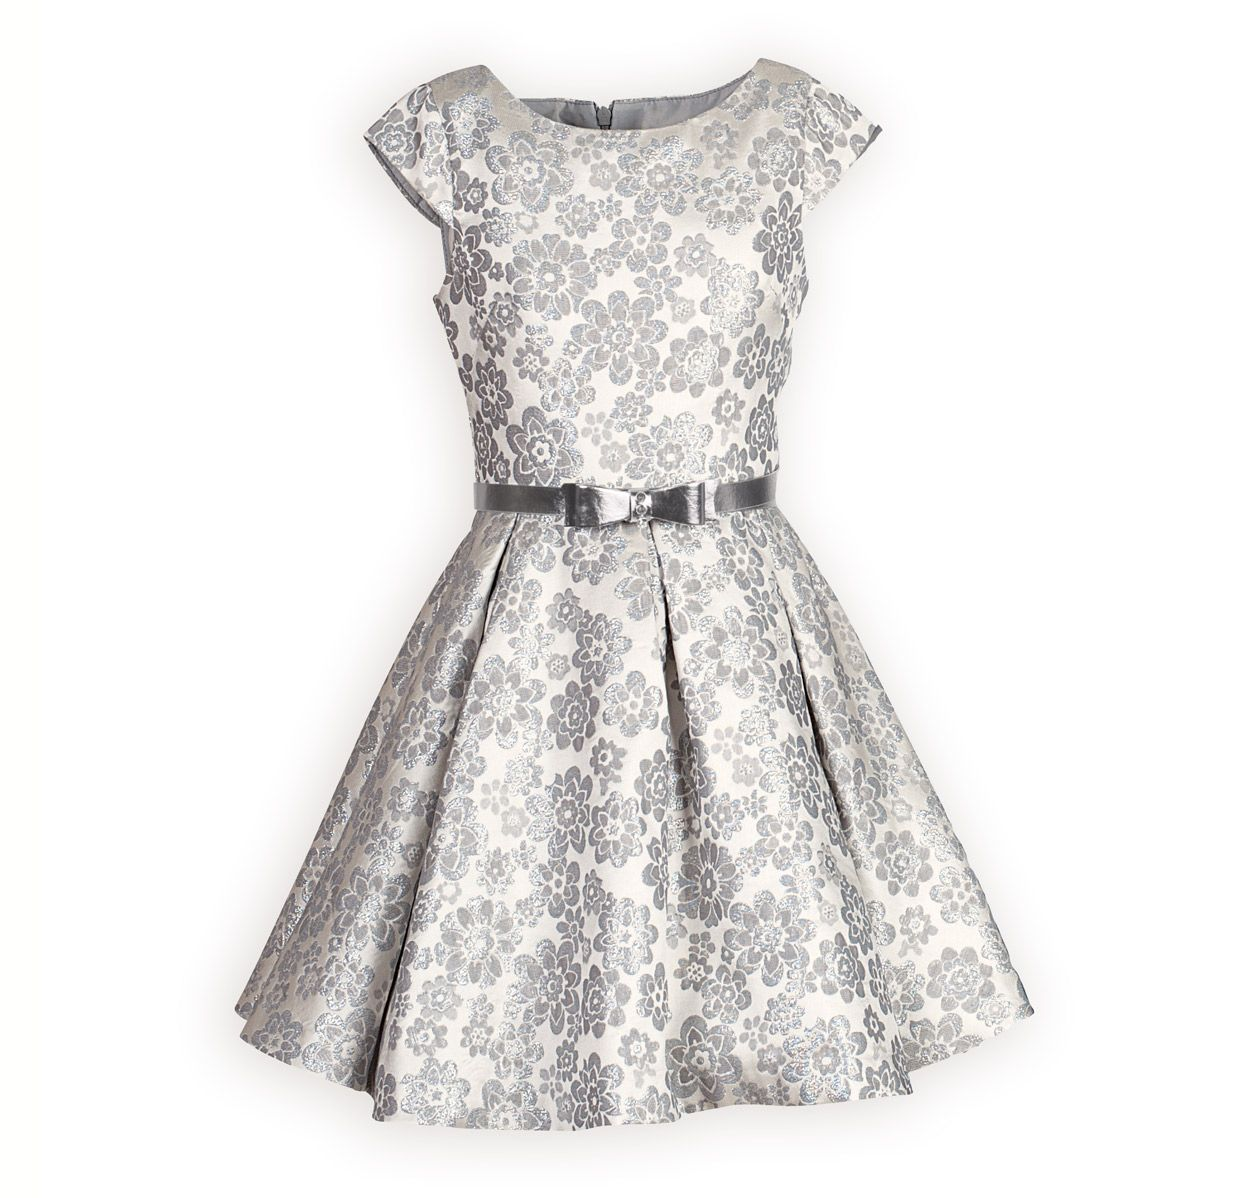 Image Result For Super Cute Outfits For Winter For Girls Ages 10 12 Girls Formal Dresses Dresses For Tweens Tween Party Dresses [ 1198 x 1233 Pixel ]